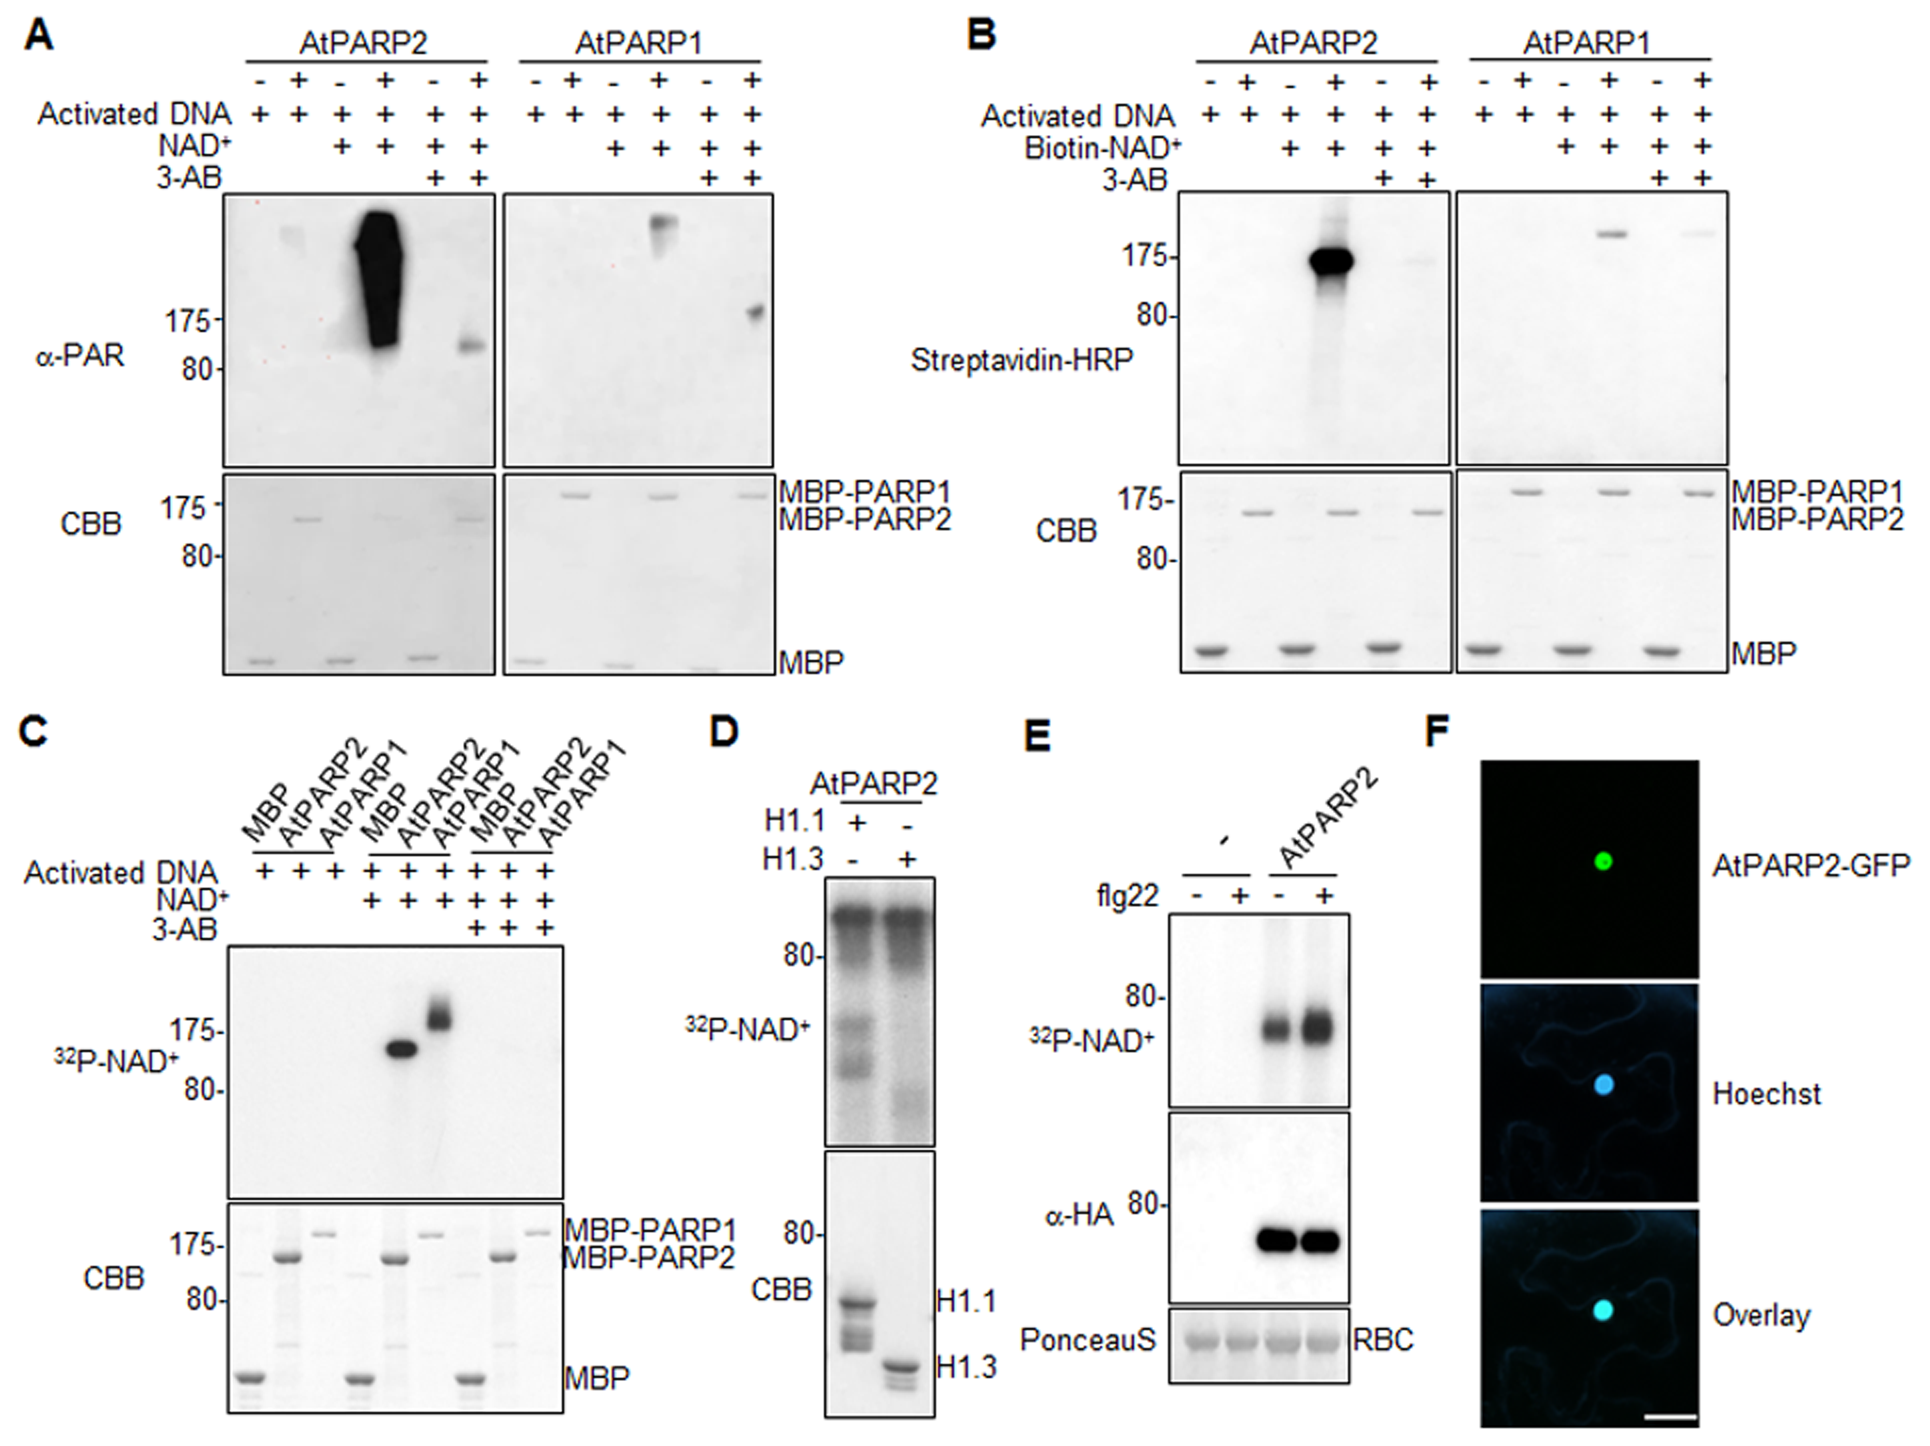 <i>Arabidopsis</i> AtPARP1 and AtPARP2 are functional poly(ADP-ribose) polymerases.